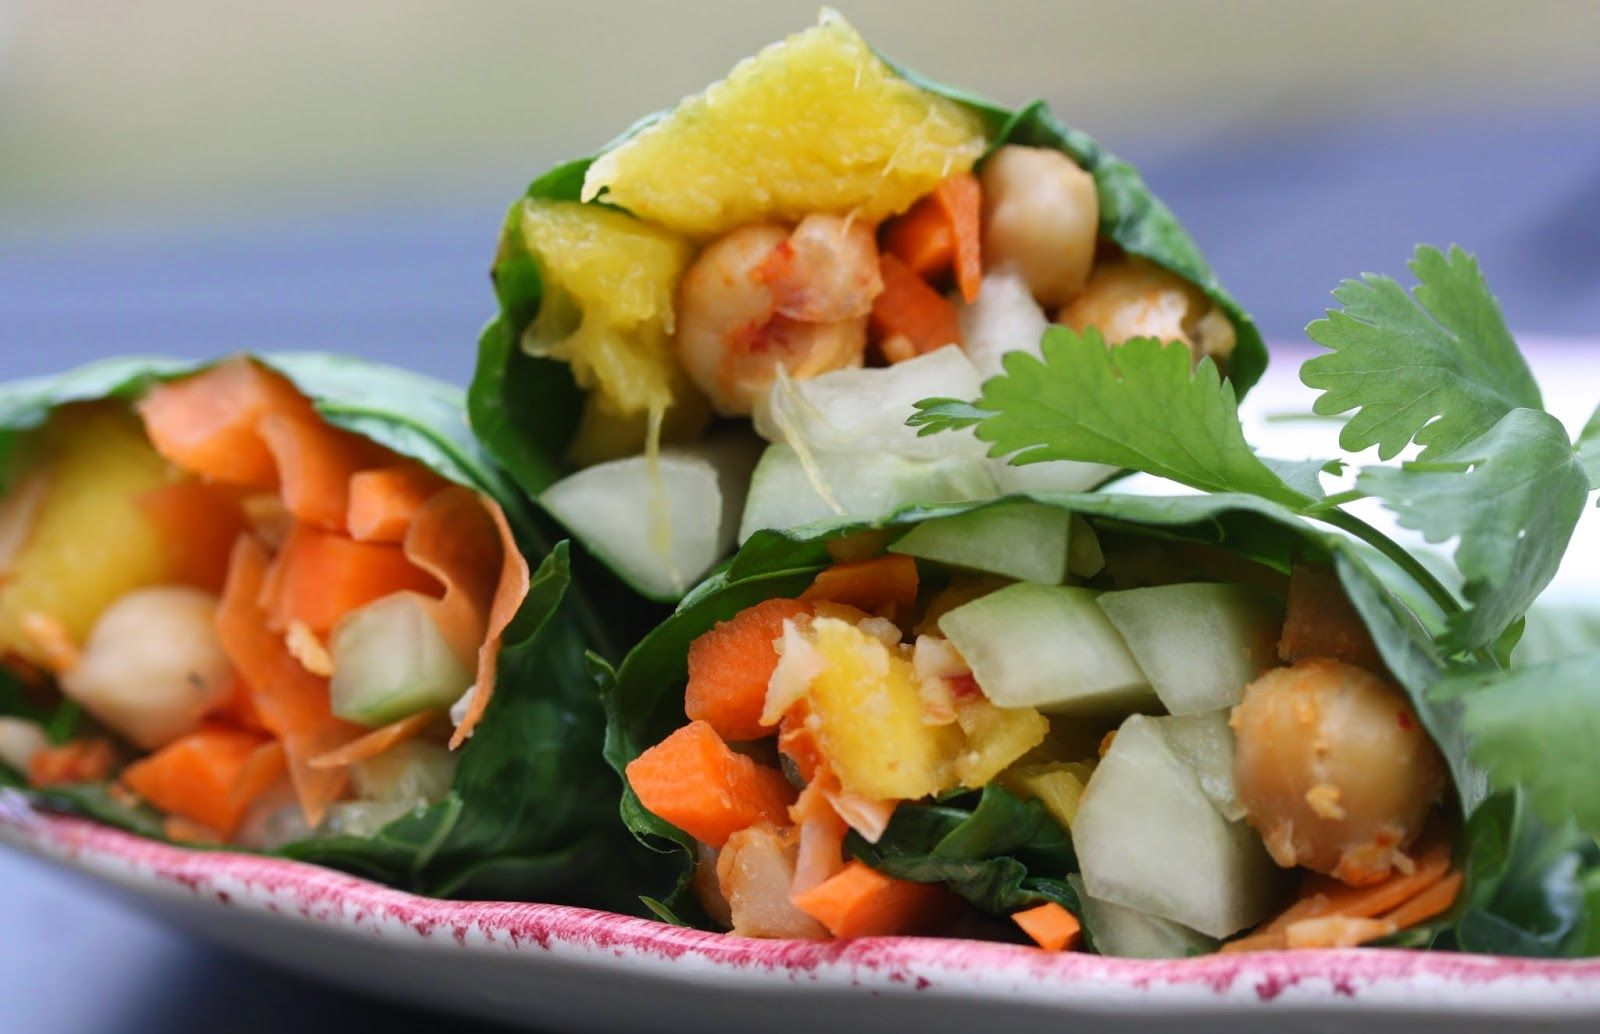 Best of Long Island and Central Florida: Thai Chickpea Collard Wraps with Peanut Sauce